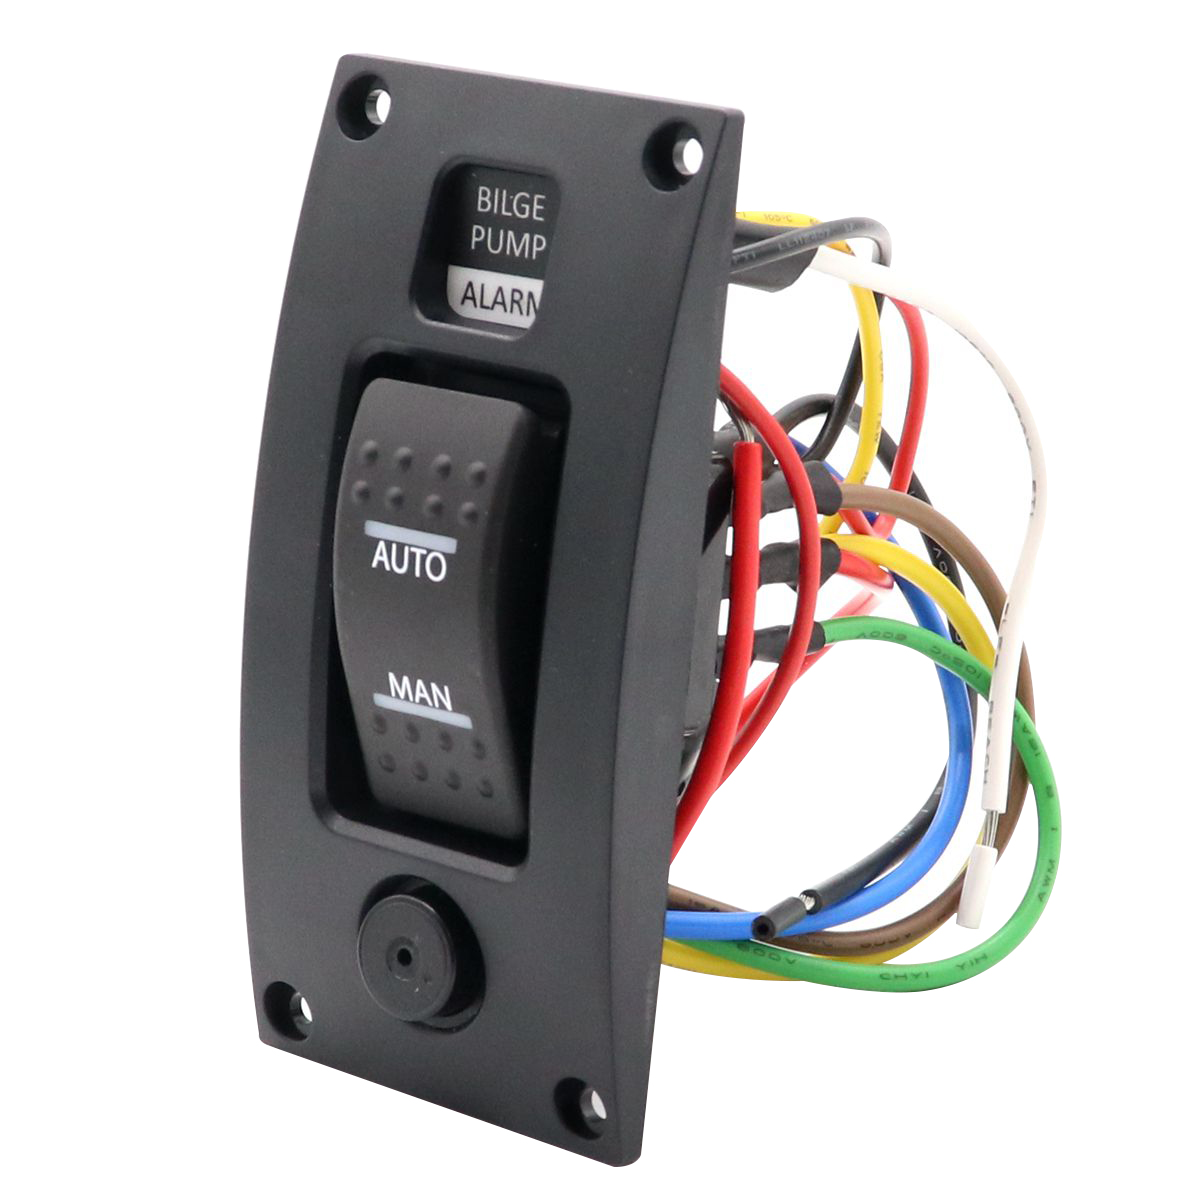 Details about 3 Way Bilge Pump Rocker Switch+Alarm Panel AUTO-OFF-MAN on 3 way electrical circuit, 3 way breakers, 3 way injector, 3 way connectors, 3 way outlets, 3 way circuit diagram, 3 way lighting,